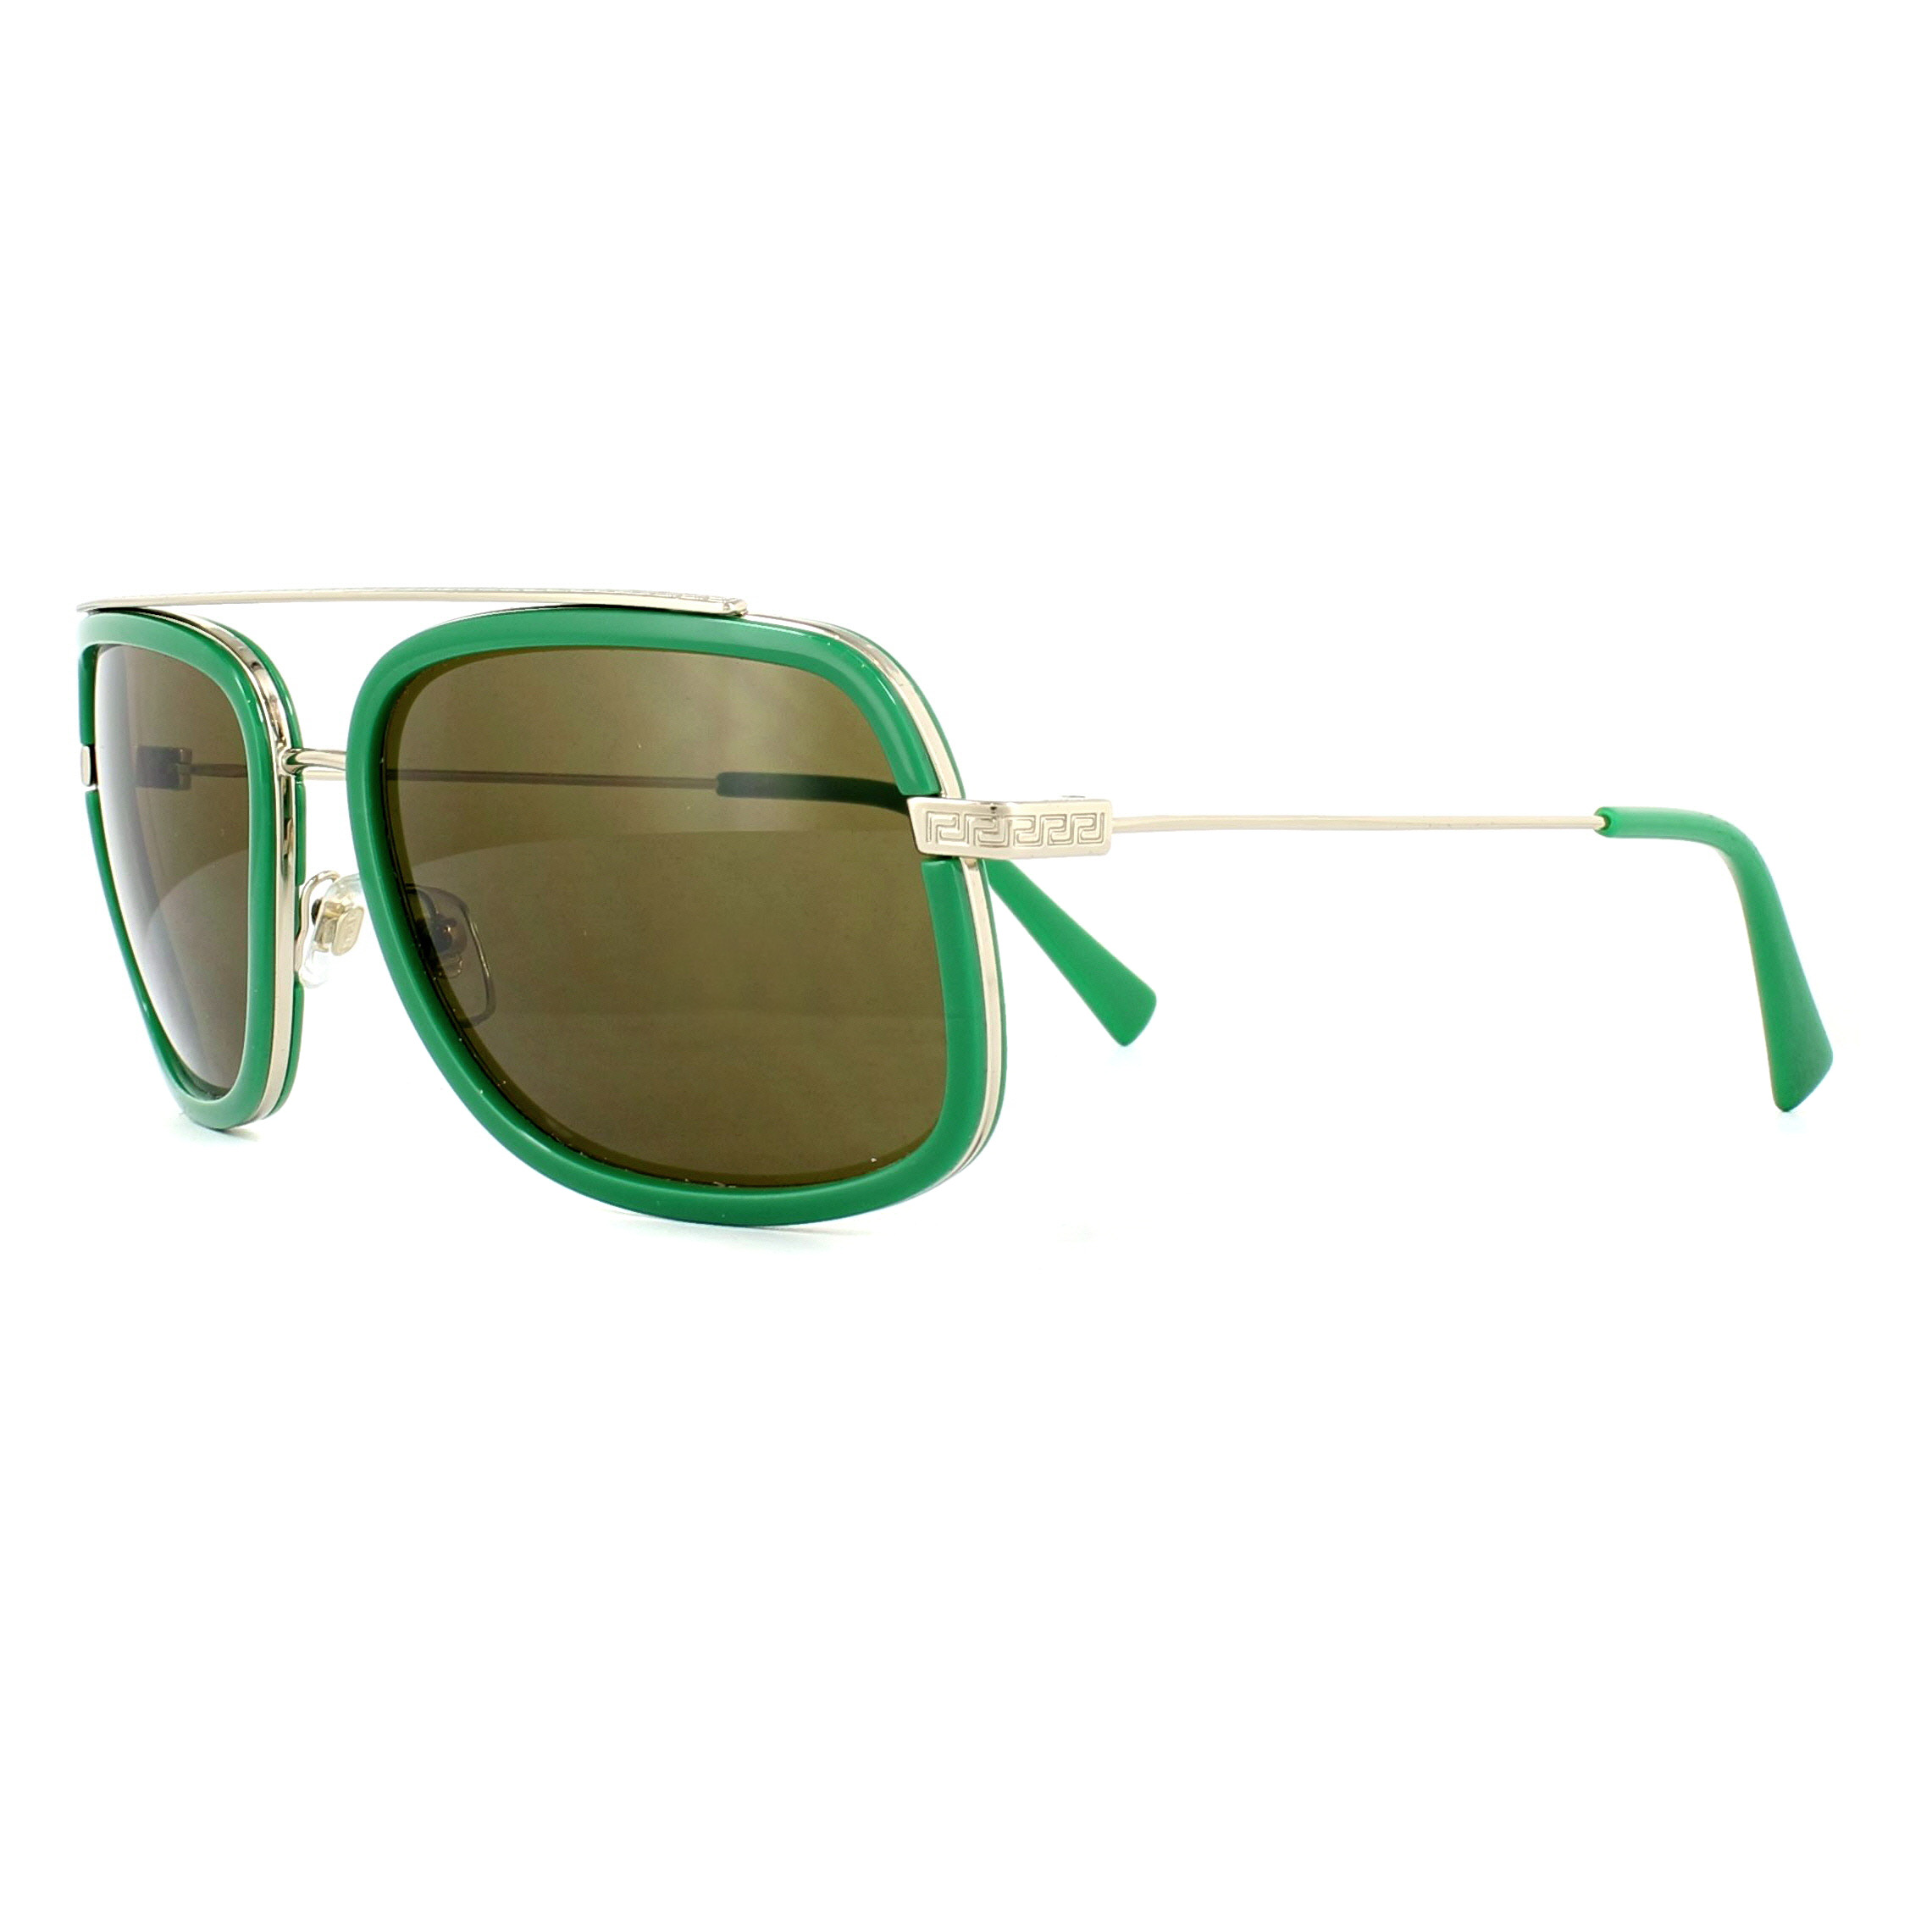 a0ae1c96954 Sentinel Versace Sunglasses 2173 139073 Pale Gold Green Brown